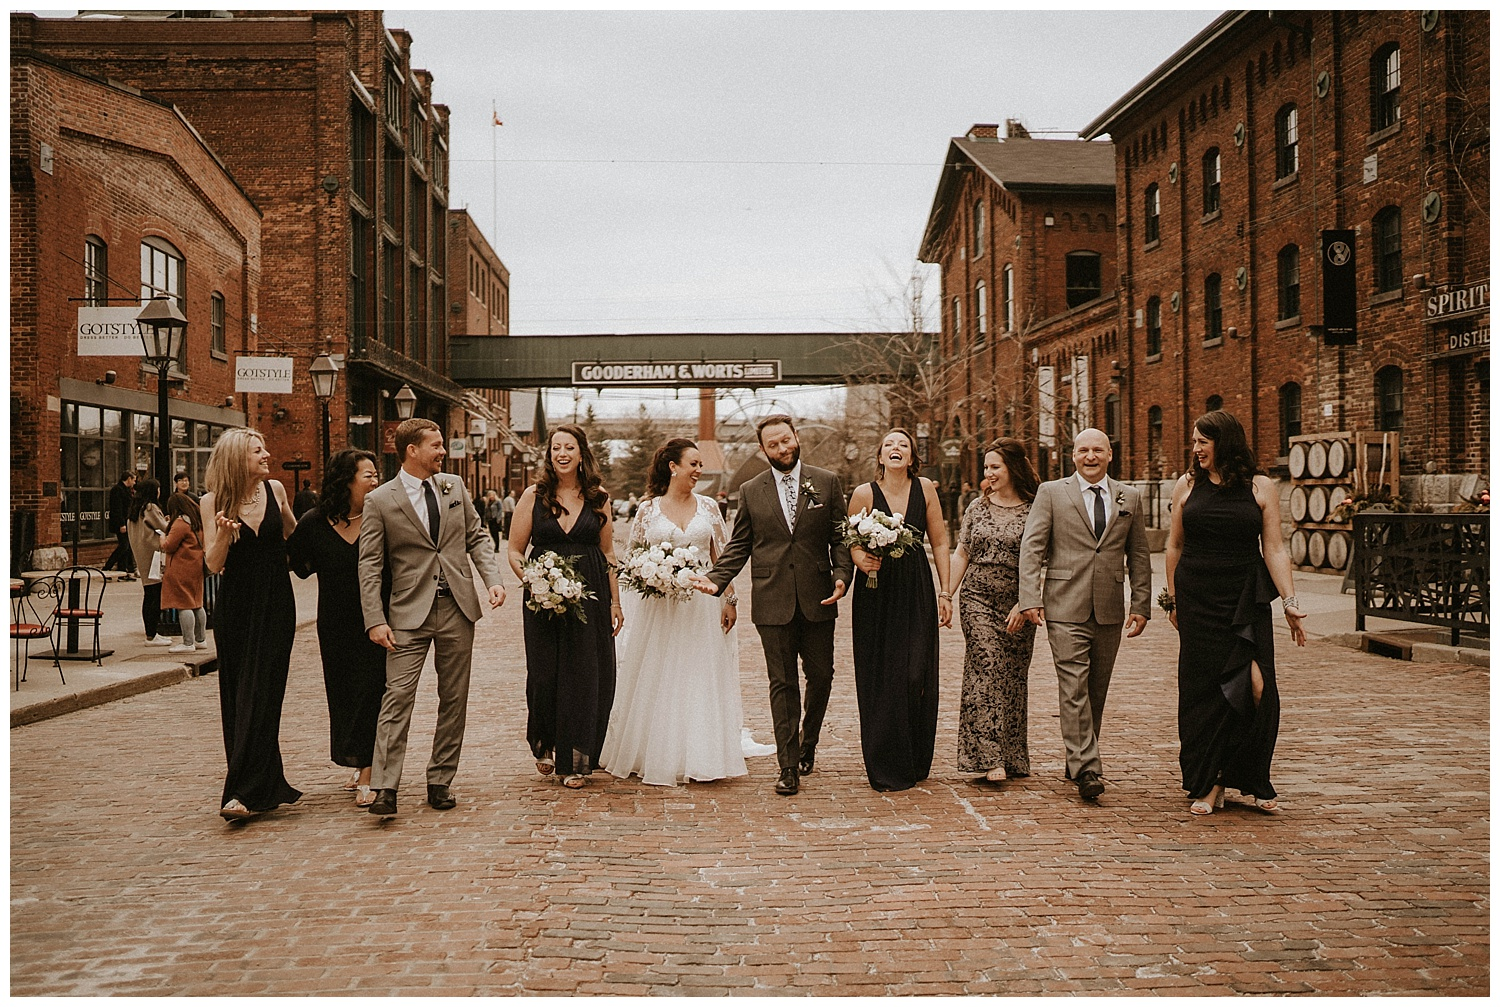 Katie Marie Photography | Archeo Wedding Arta Gallery Wedding | Distillery District Wedding | Toronto Wedding Photographer | Hamilton Toronto Ontario Wedding Photographer |_0059.jpg